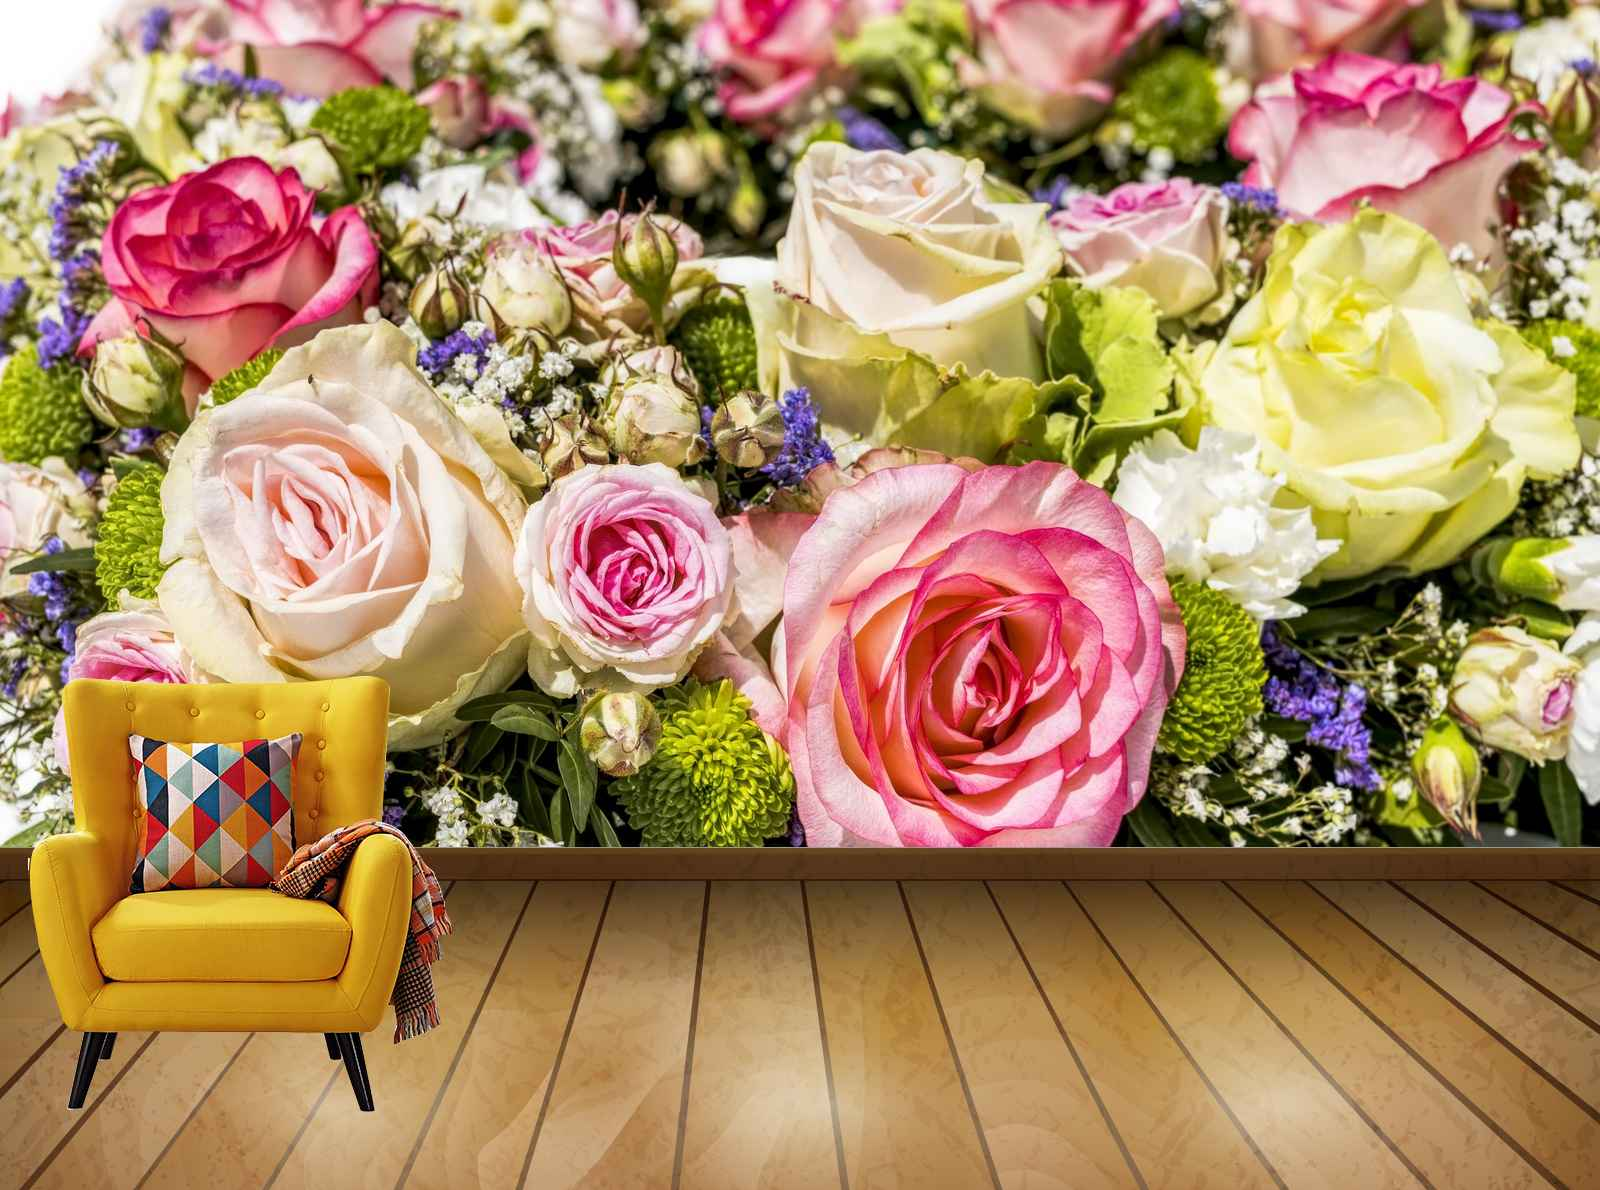 Avikalp Exclusive Awi7528 Flowers Bouquet Roses Wedding Blossom Bloom HD Wallpaper